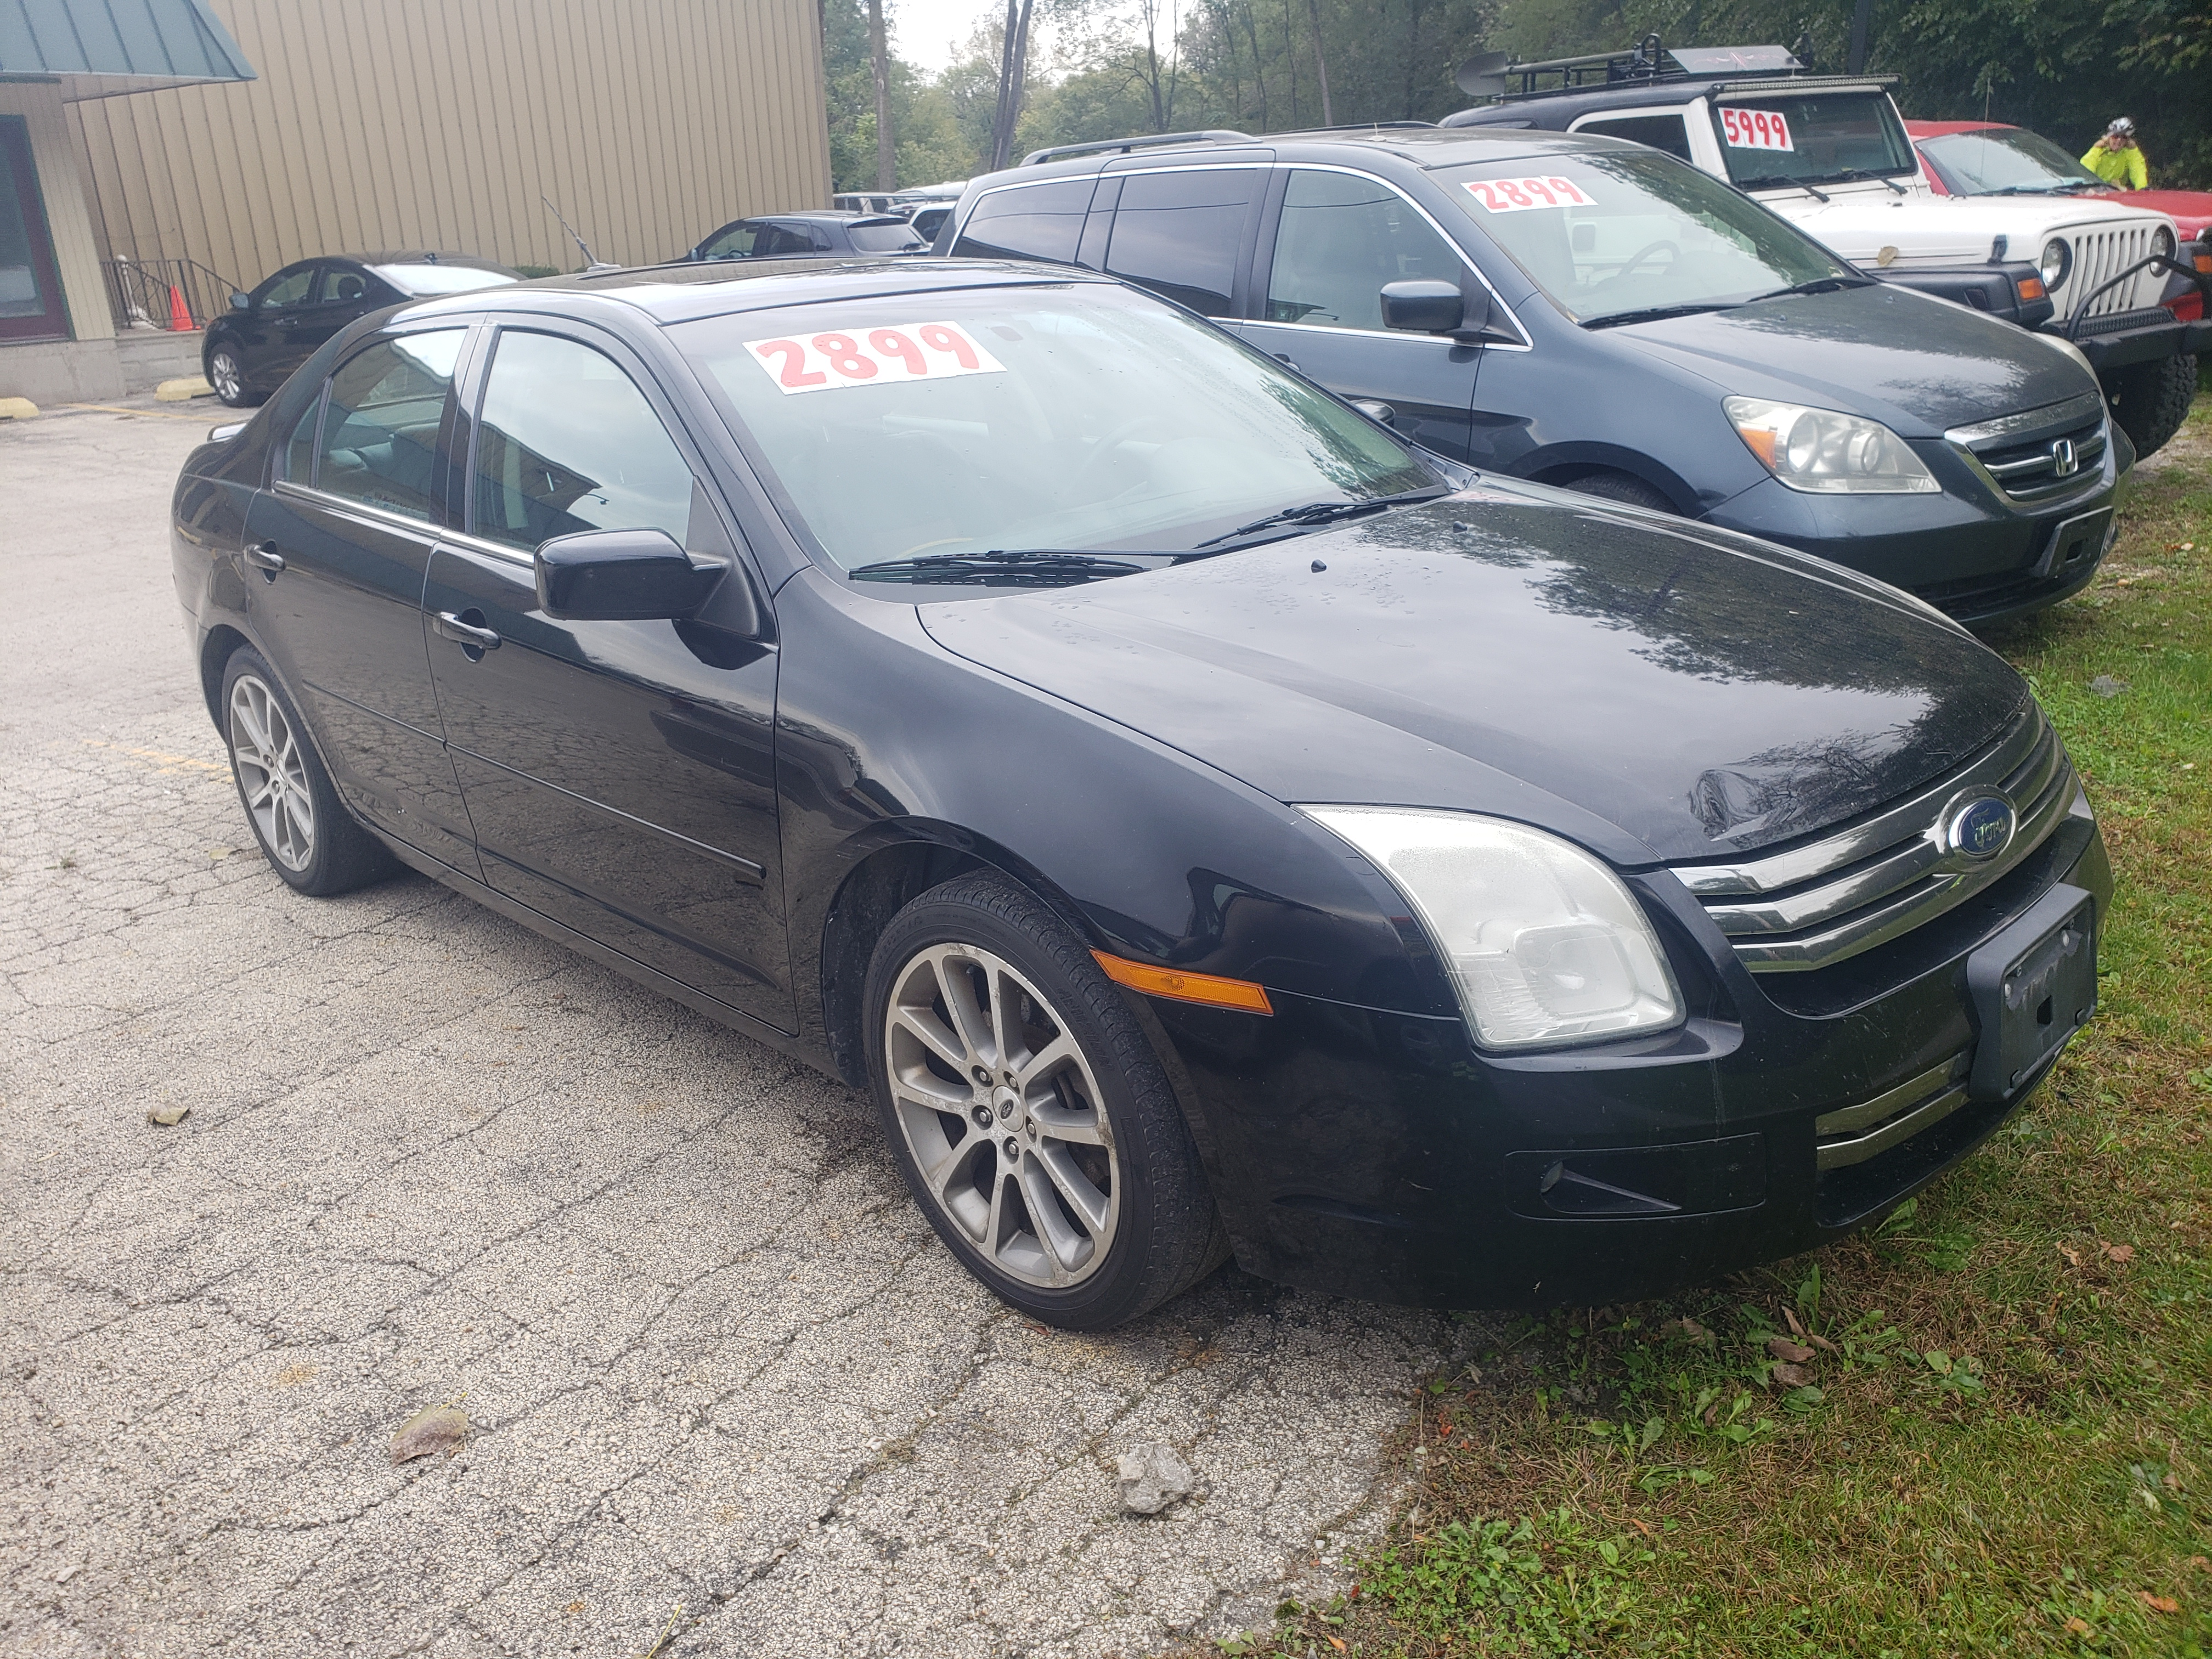 2008 Ford Fusion - 150K - $2899 - You'll look good strutting around town in this bad boy!